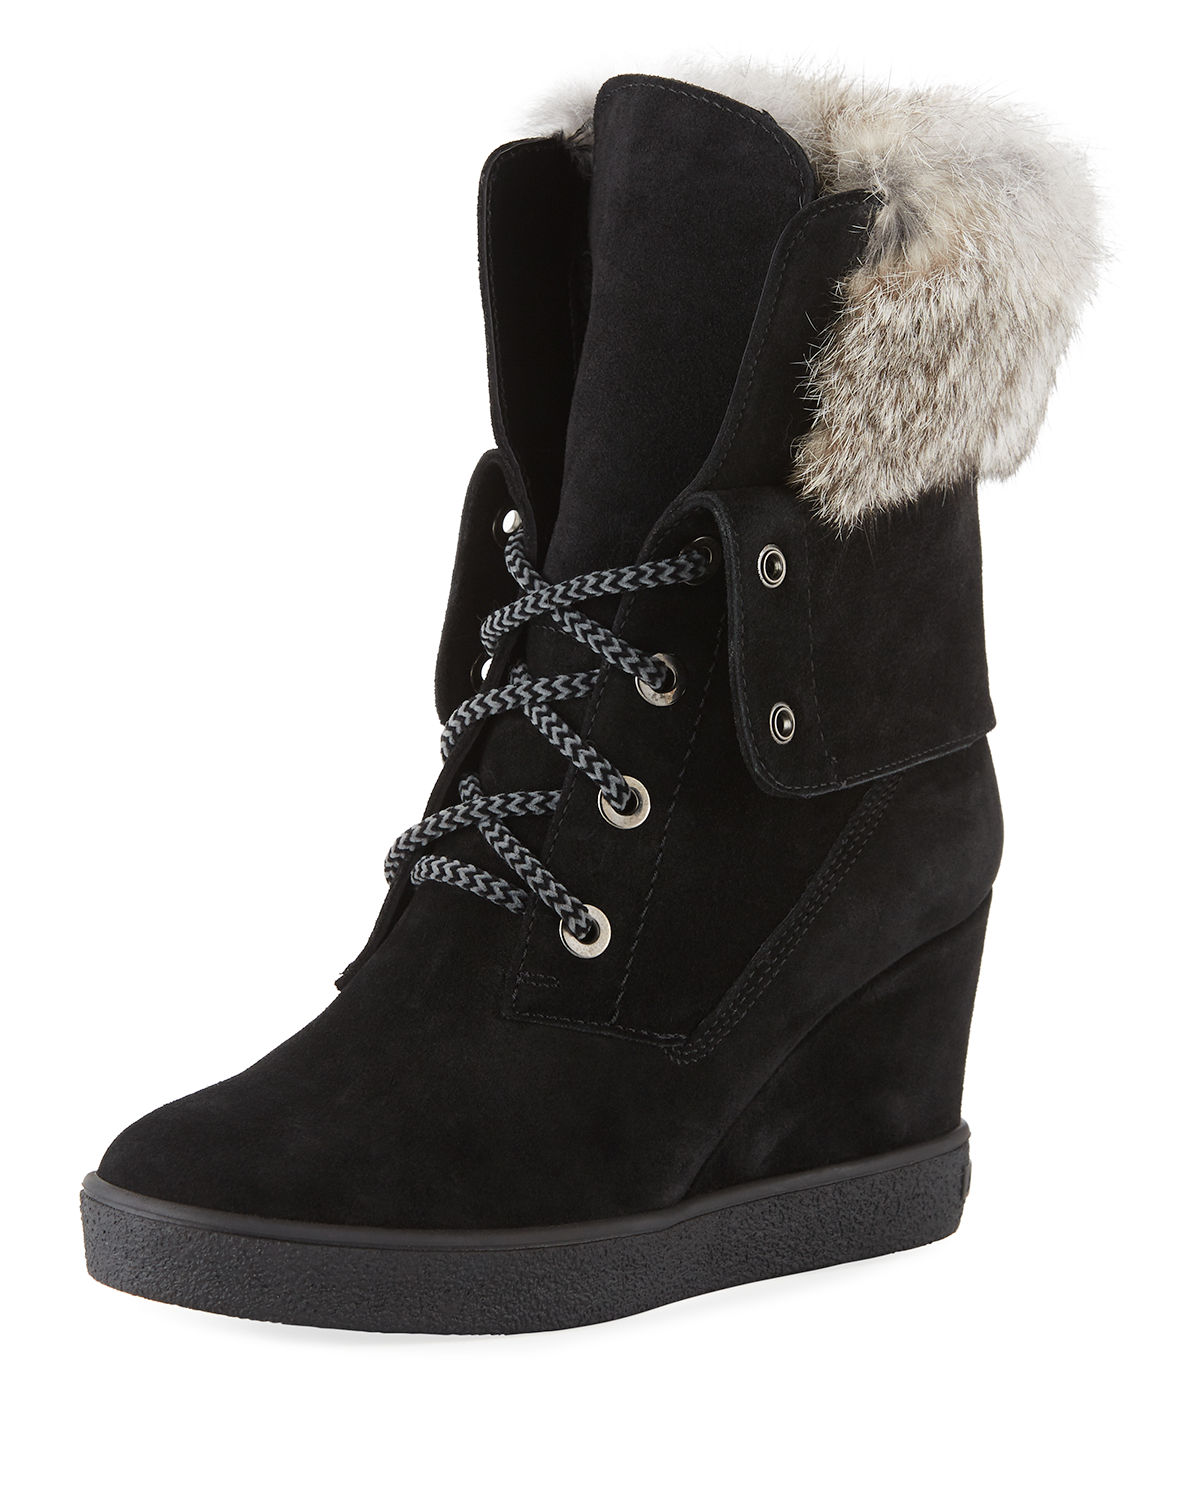 7a1d558ffef Aquatalia Cordelia High Wedge Boots w  Fur Trim